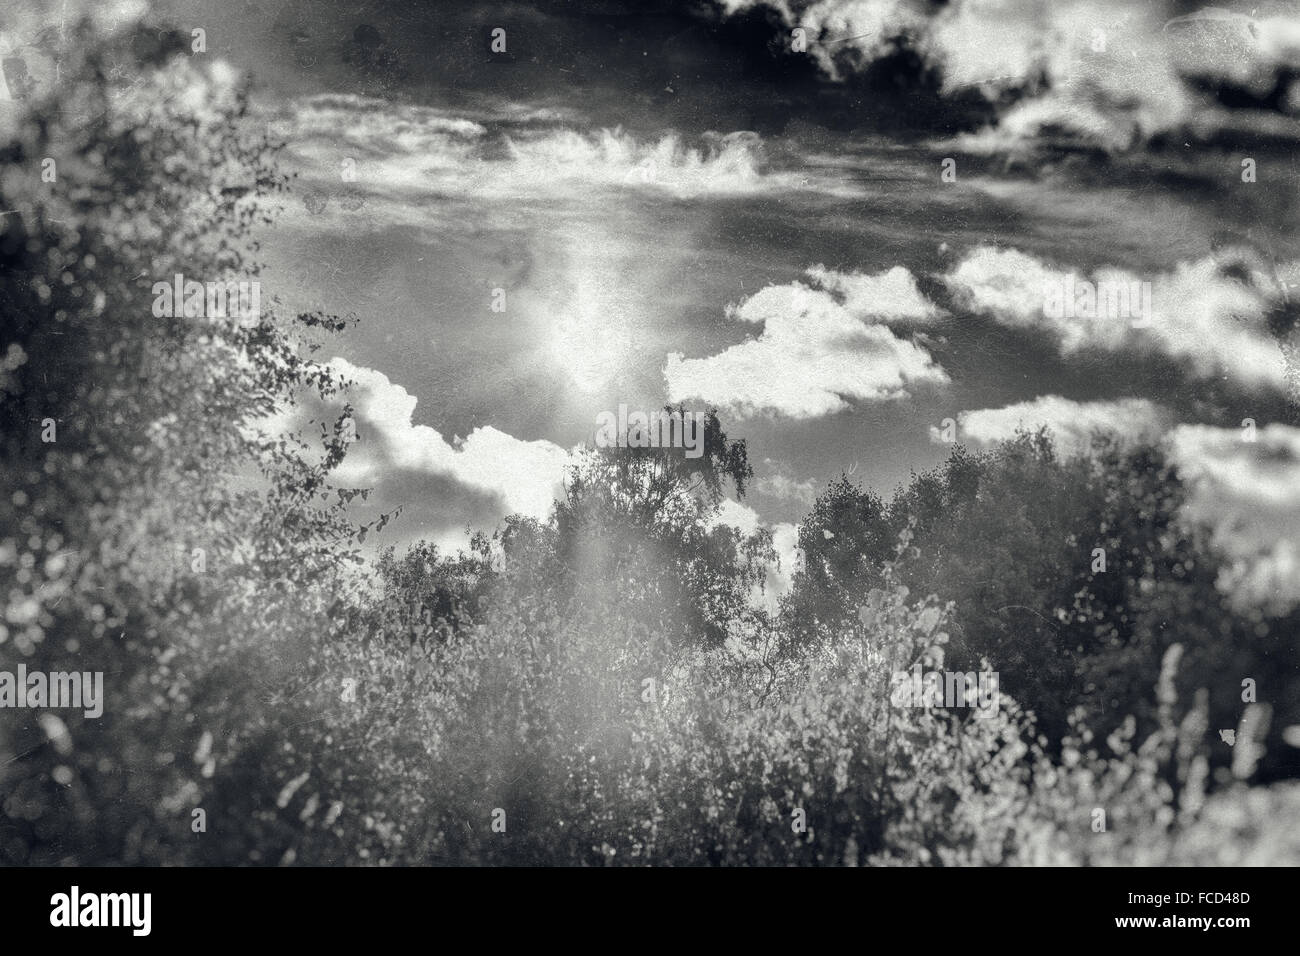 Sunshine, Clouds And Trees In Summer - Stock Image